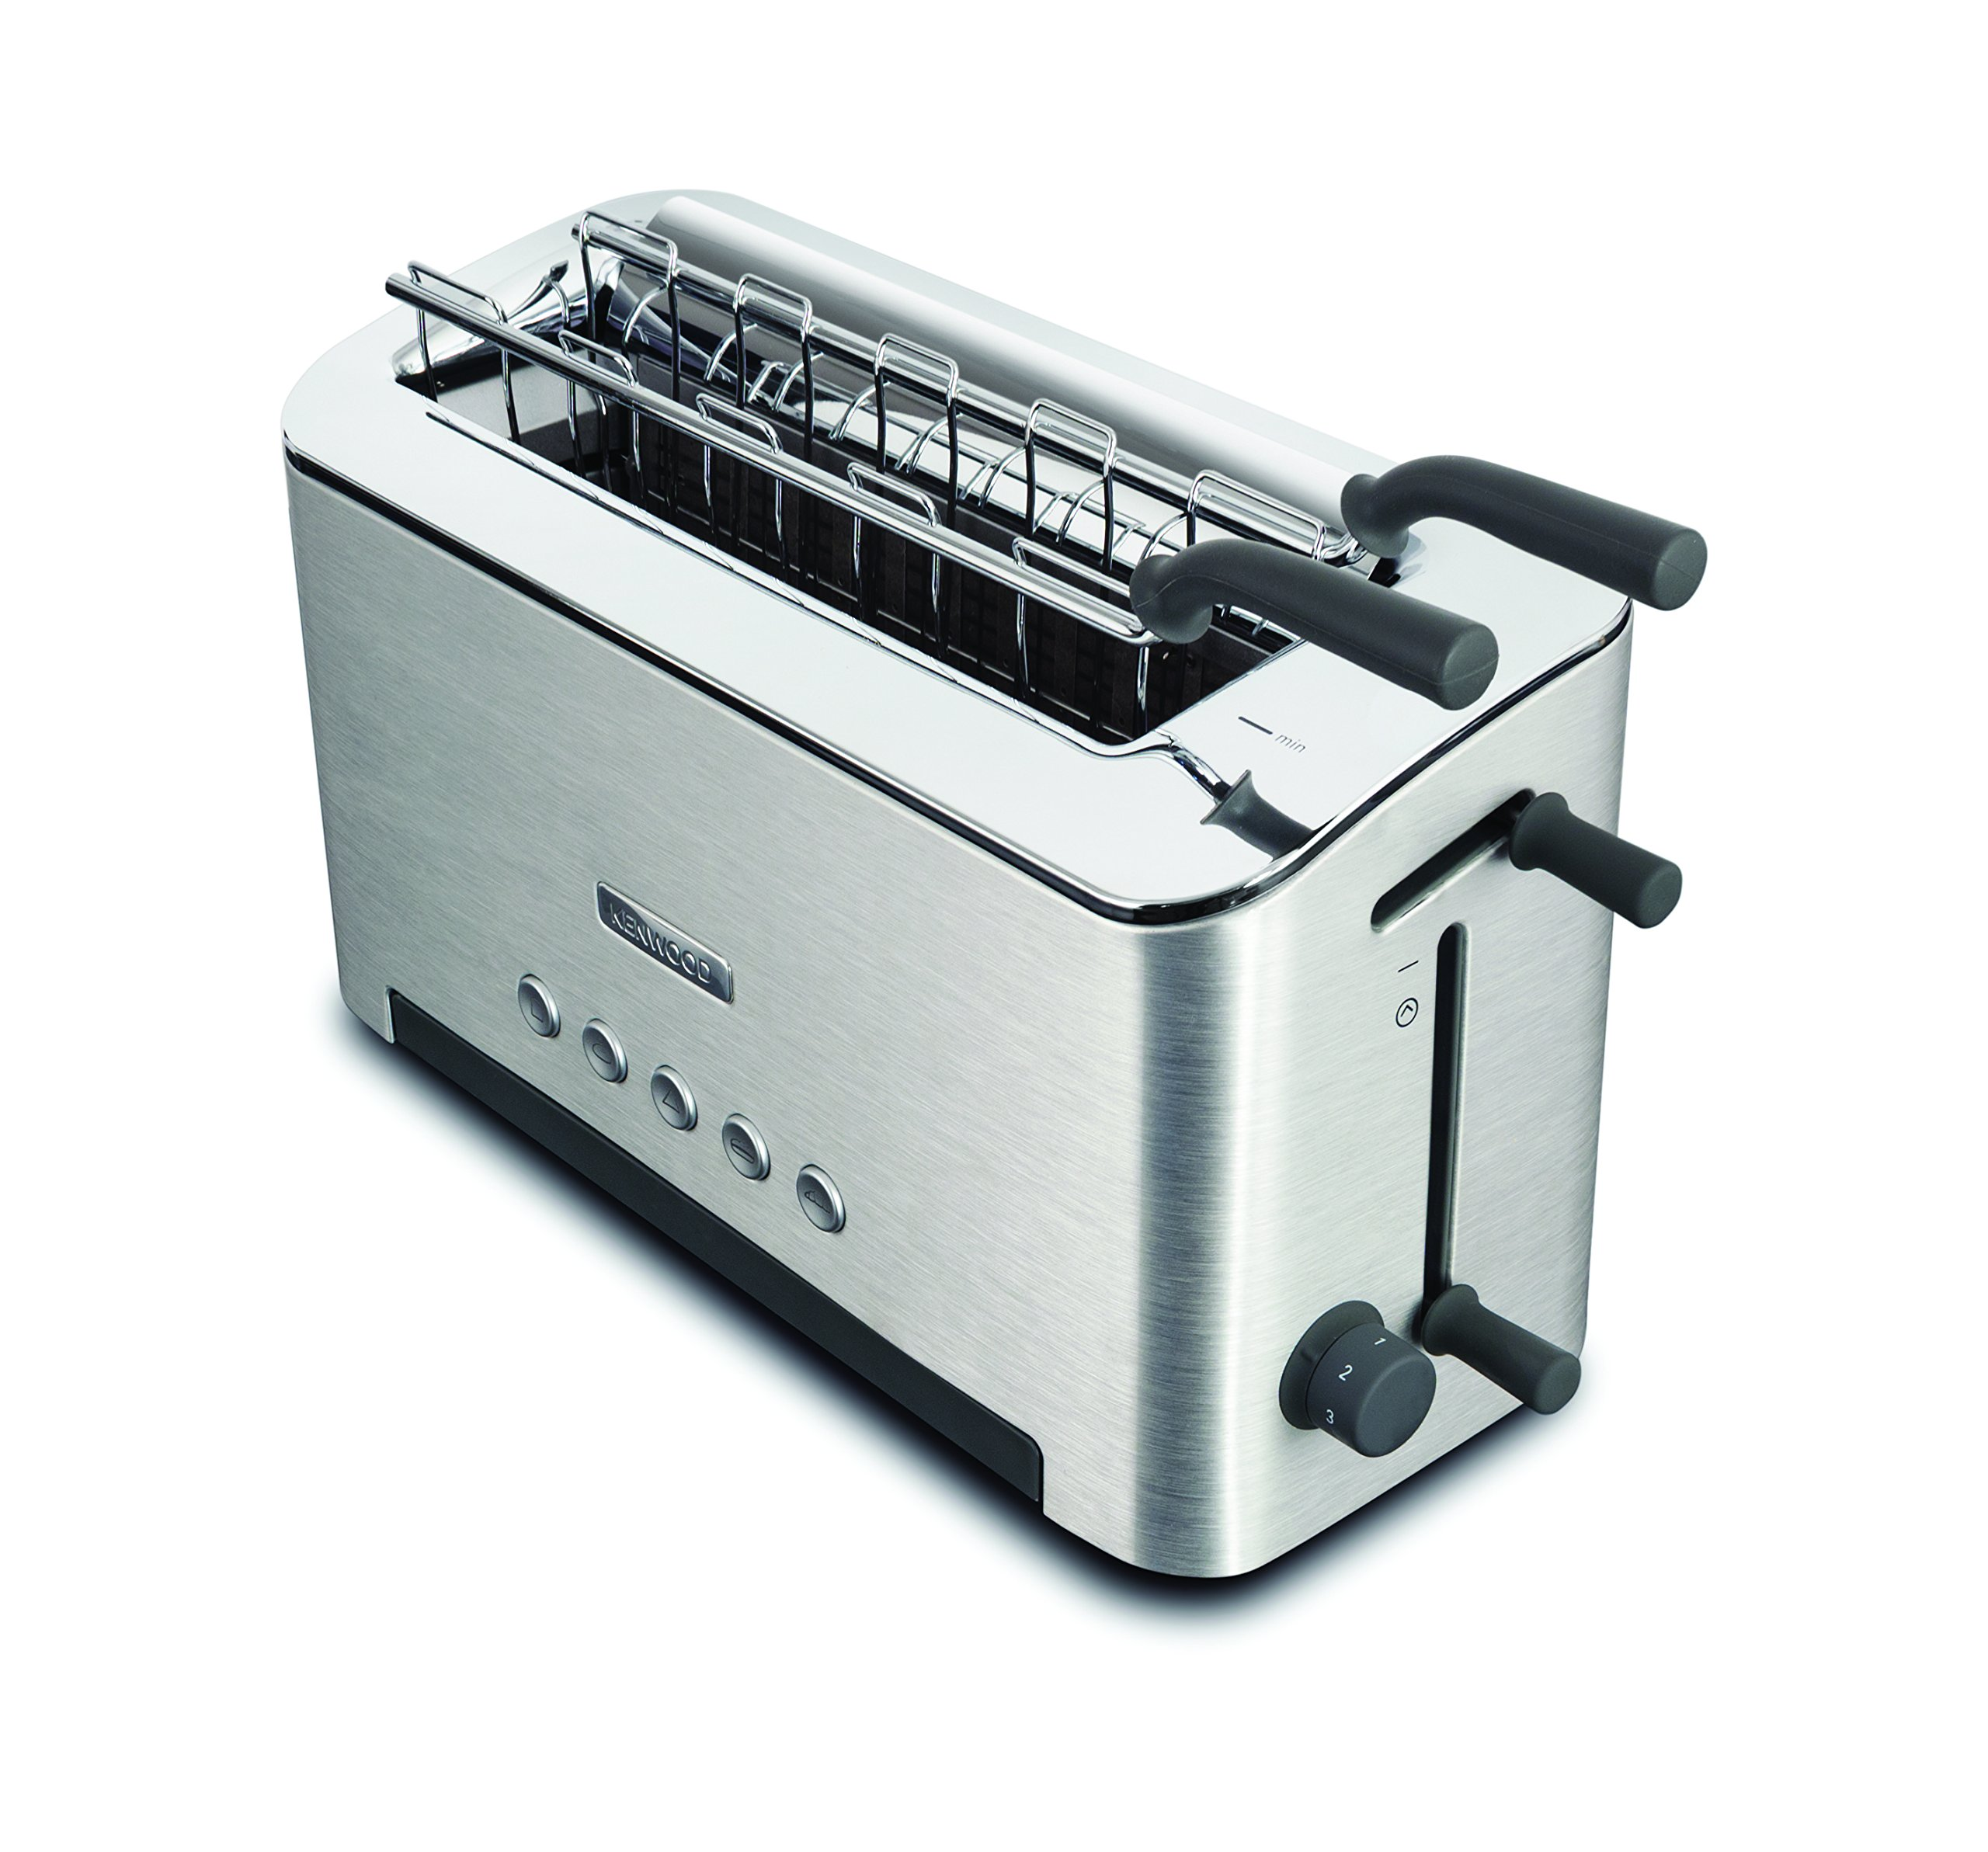 Kenwood-TTM-610-Multi-Funktions-Toaster-1080-W-silber